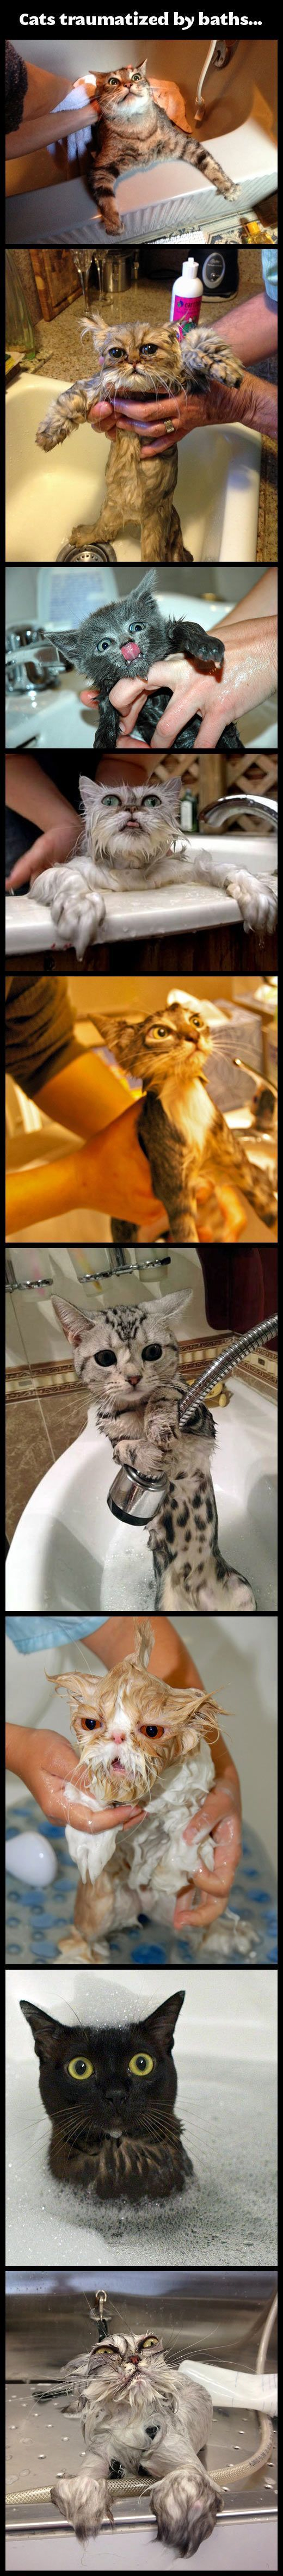 Cats traumatized by baths funny picture